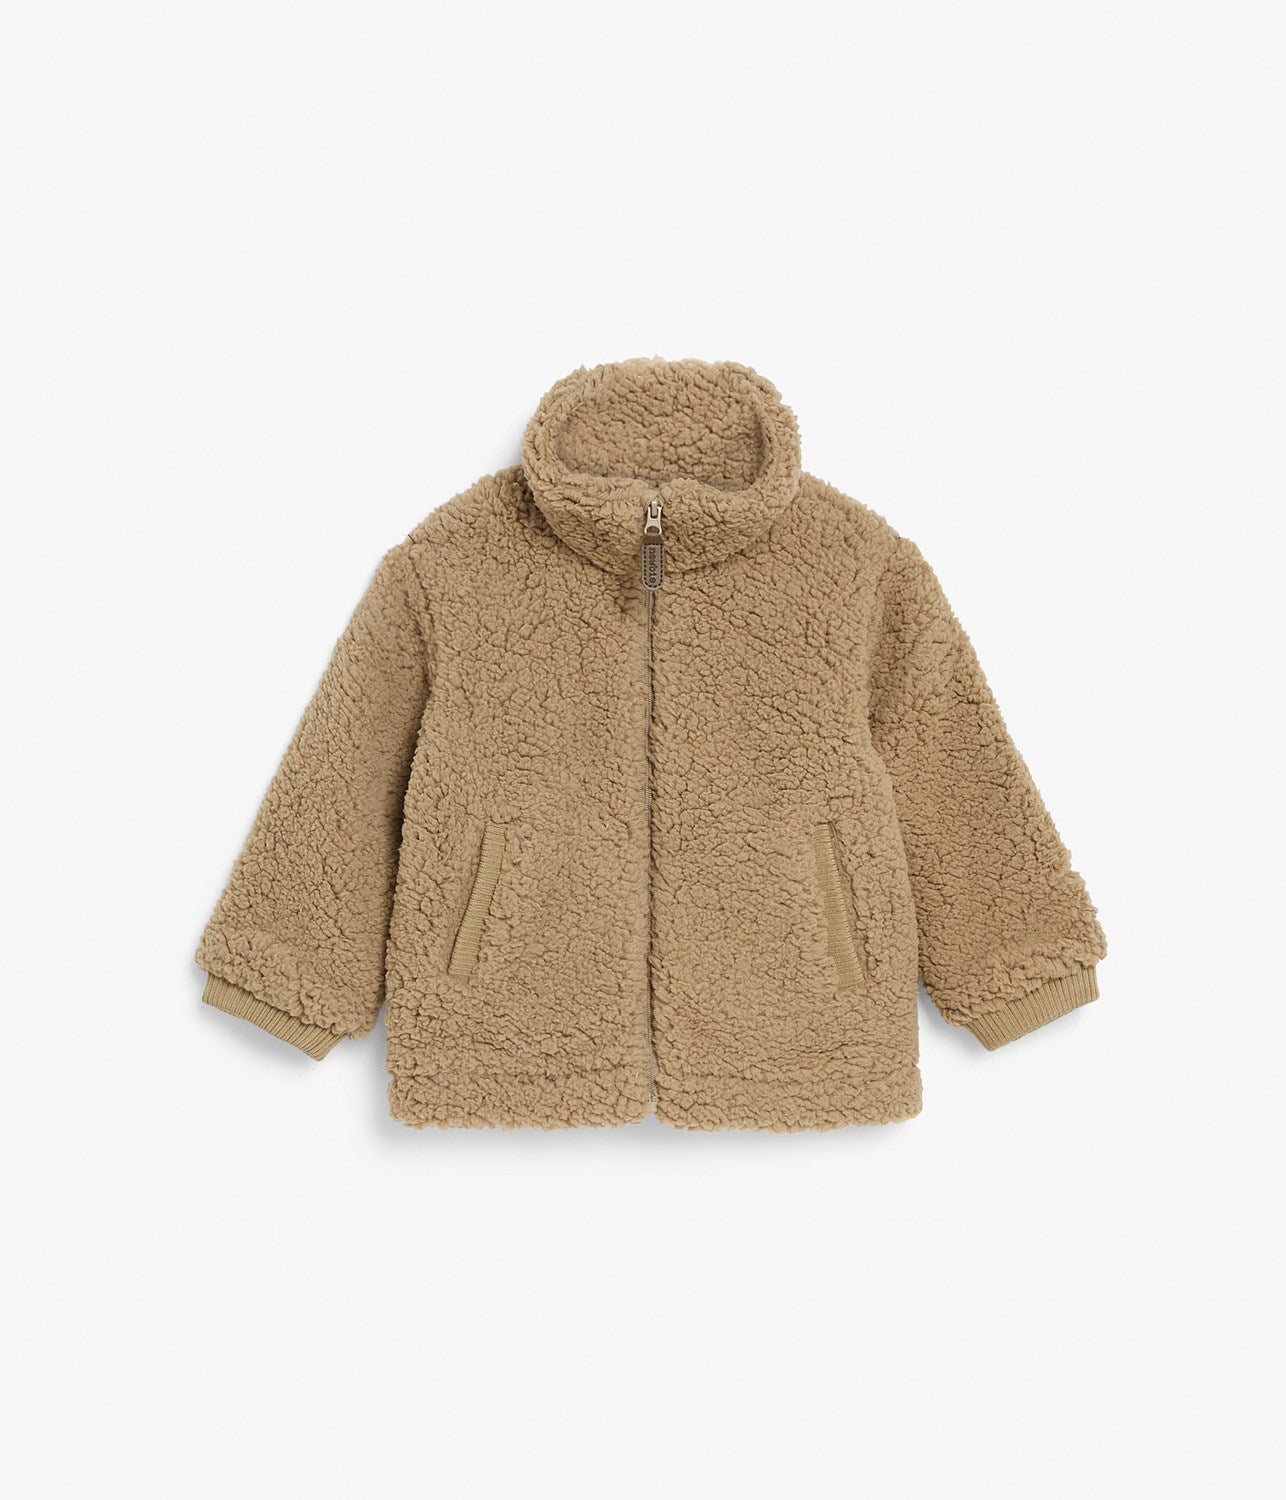 Baby brown teddy jacket